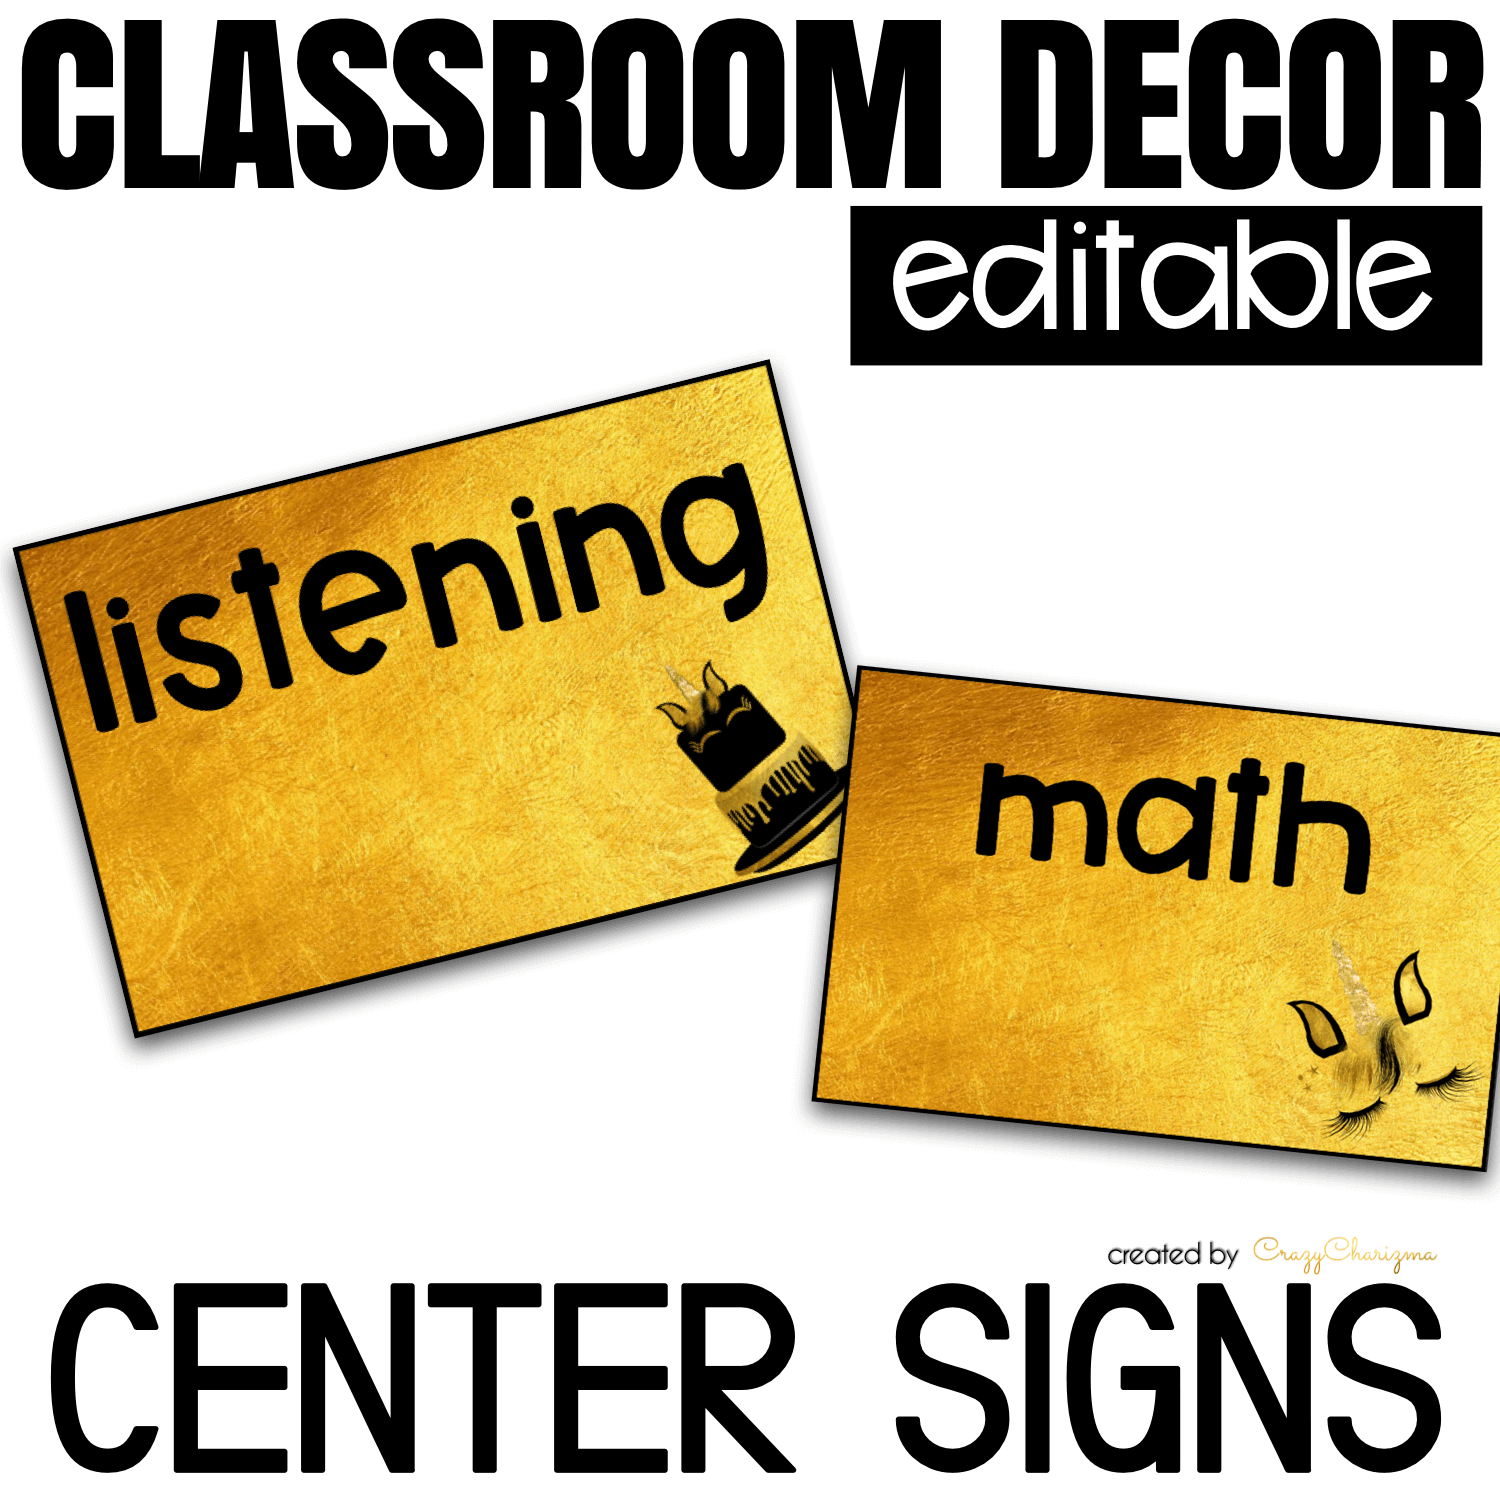 Looking for bright and clear EDITABLE center signs? Spice your classroom with this visually appealing classroom decor!